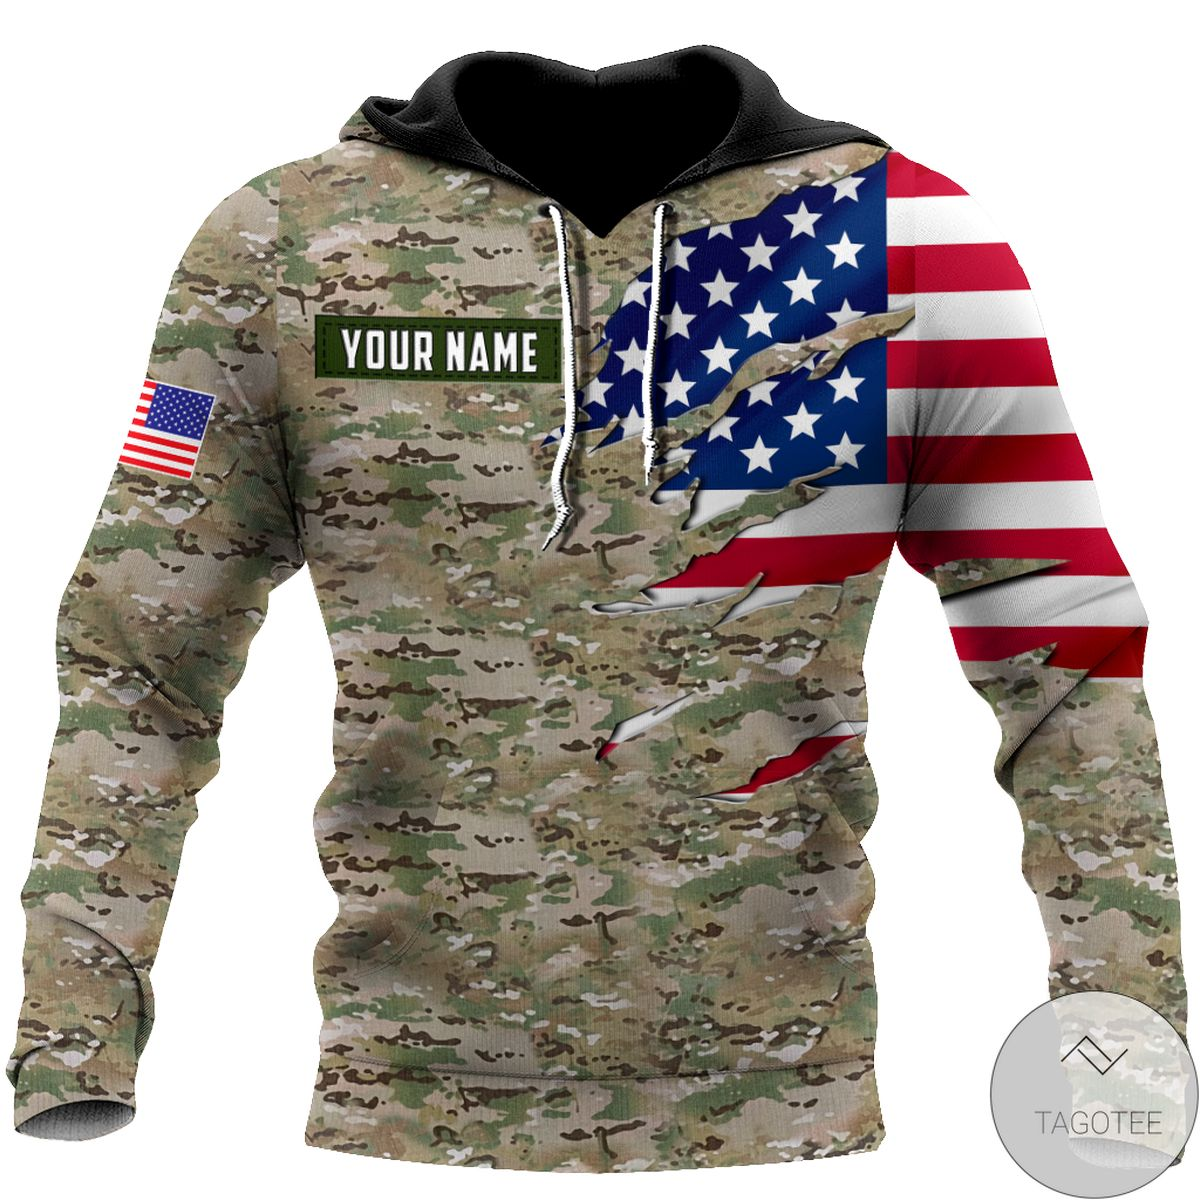 Where To Buy Remembrance The United States Camo Soldier 3D All Over Print Hoodie